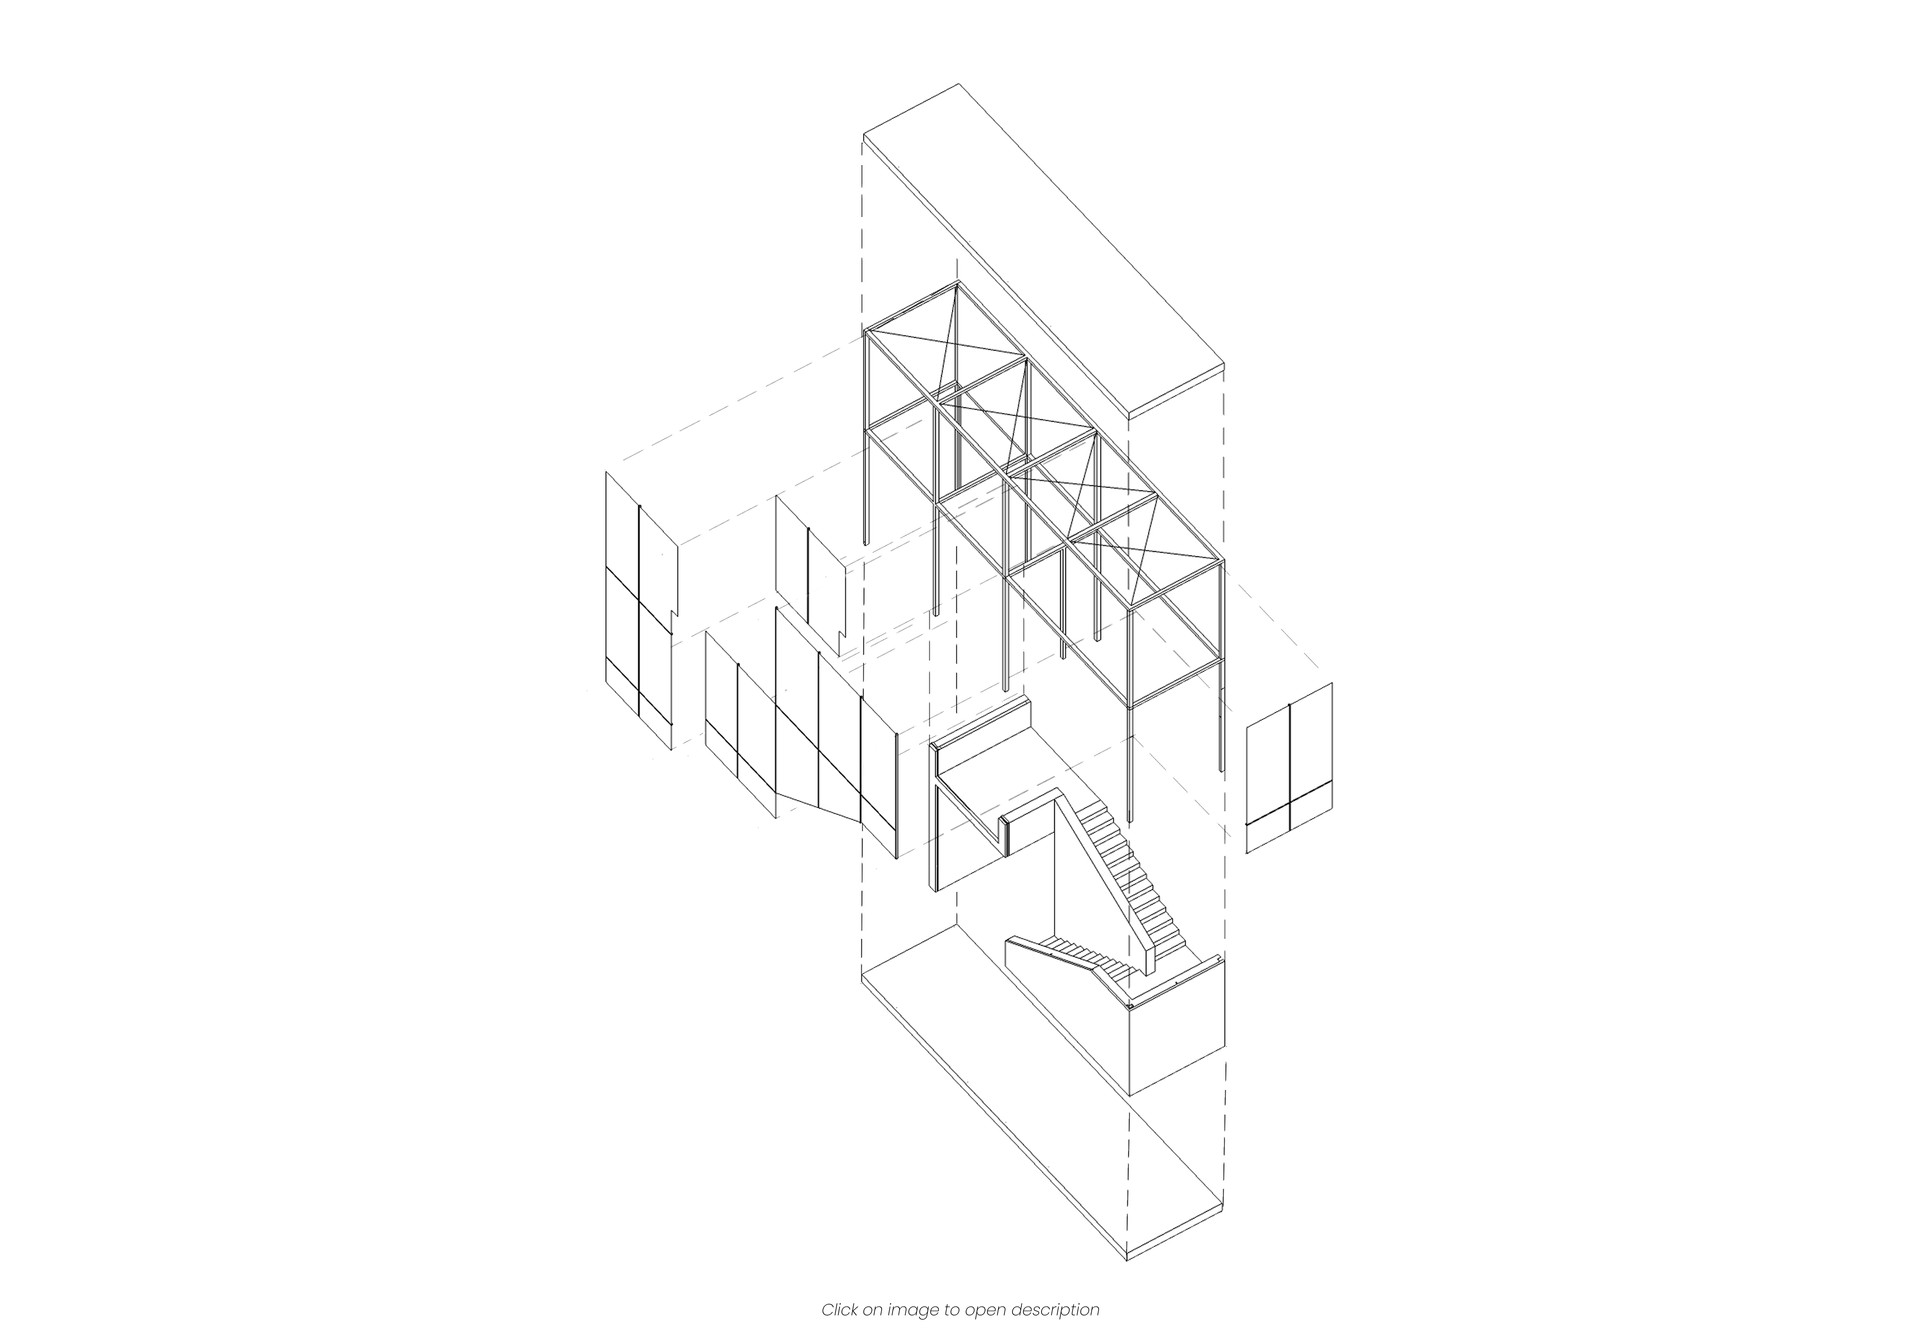 Restoration and consolidation of Palazzo Tassoni: project of a stairwell as a connective element